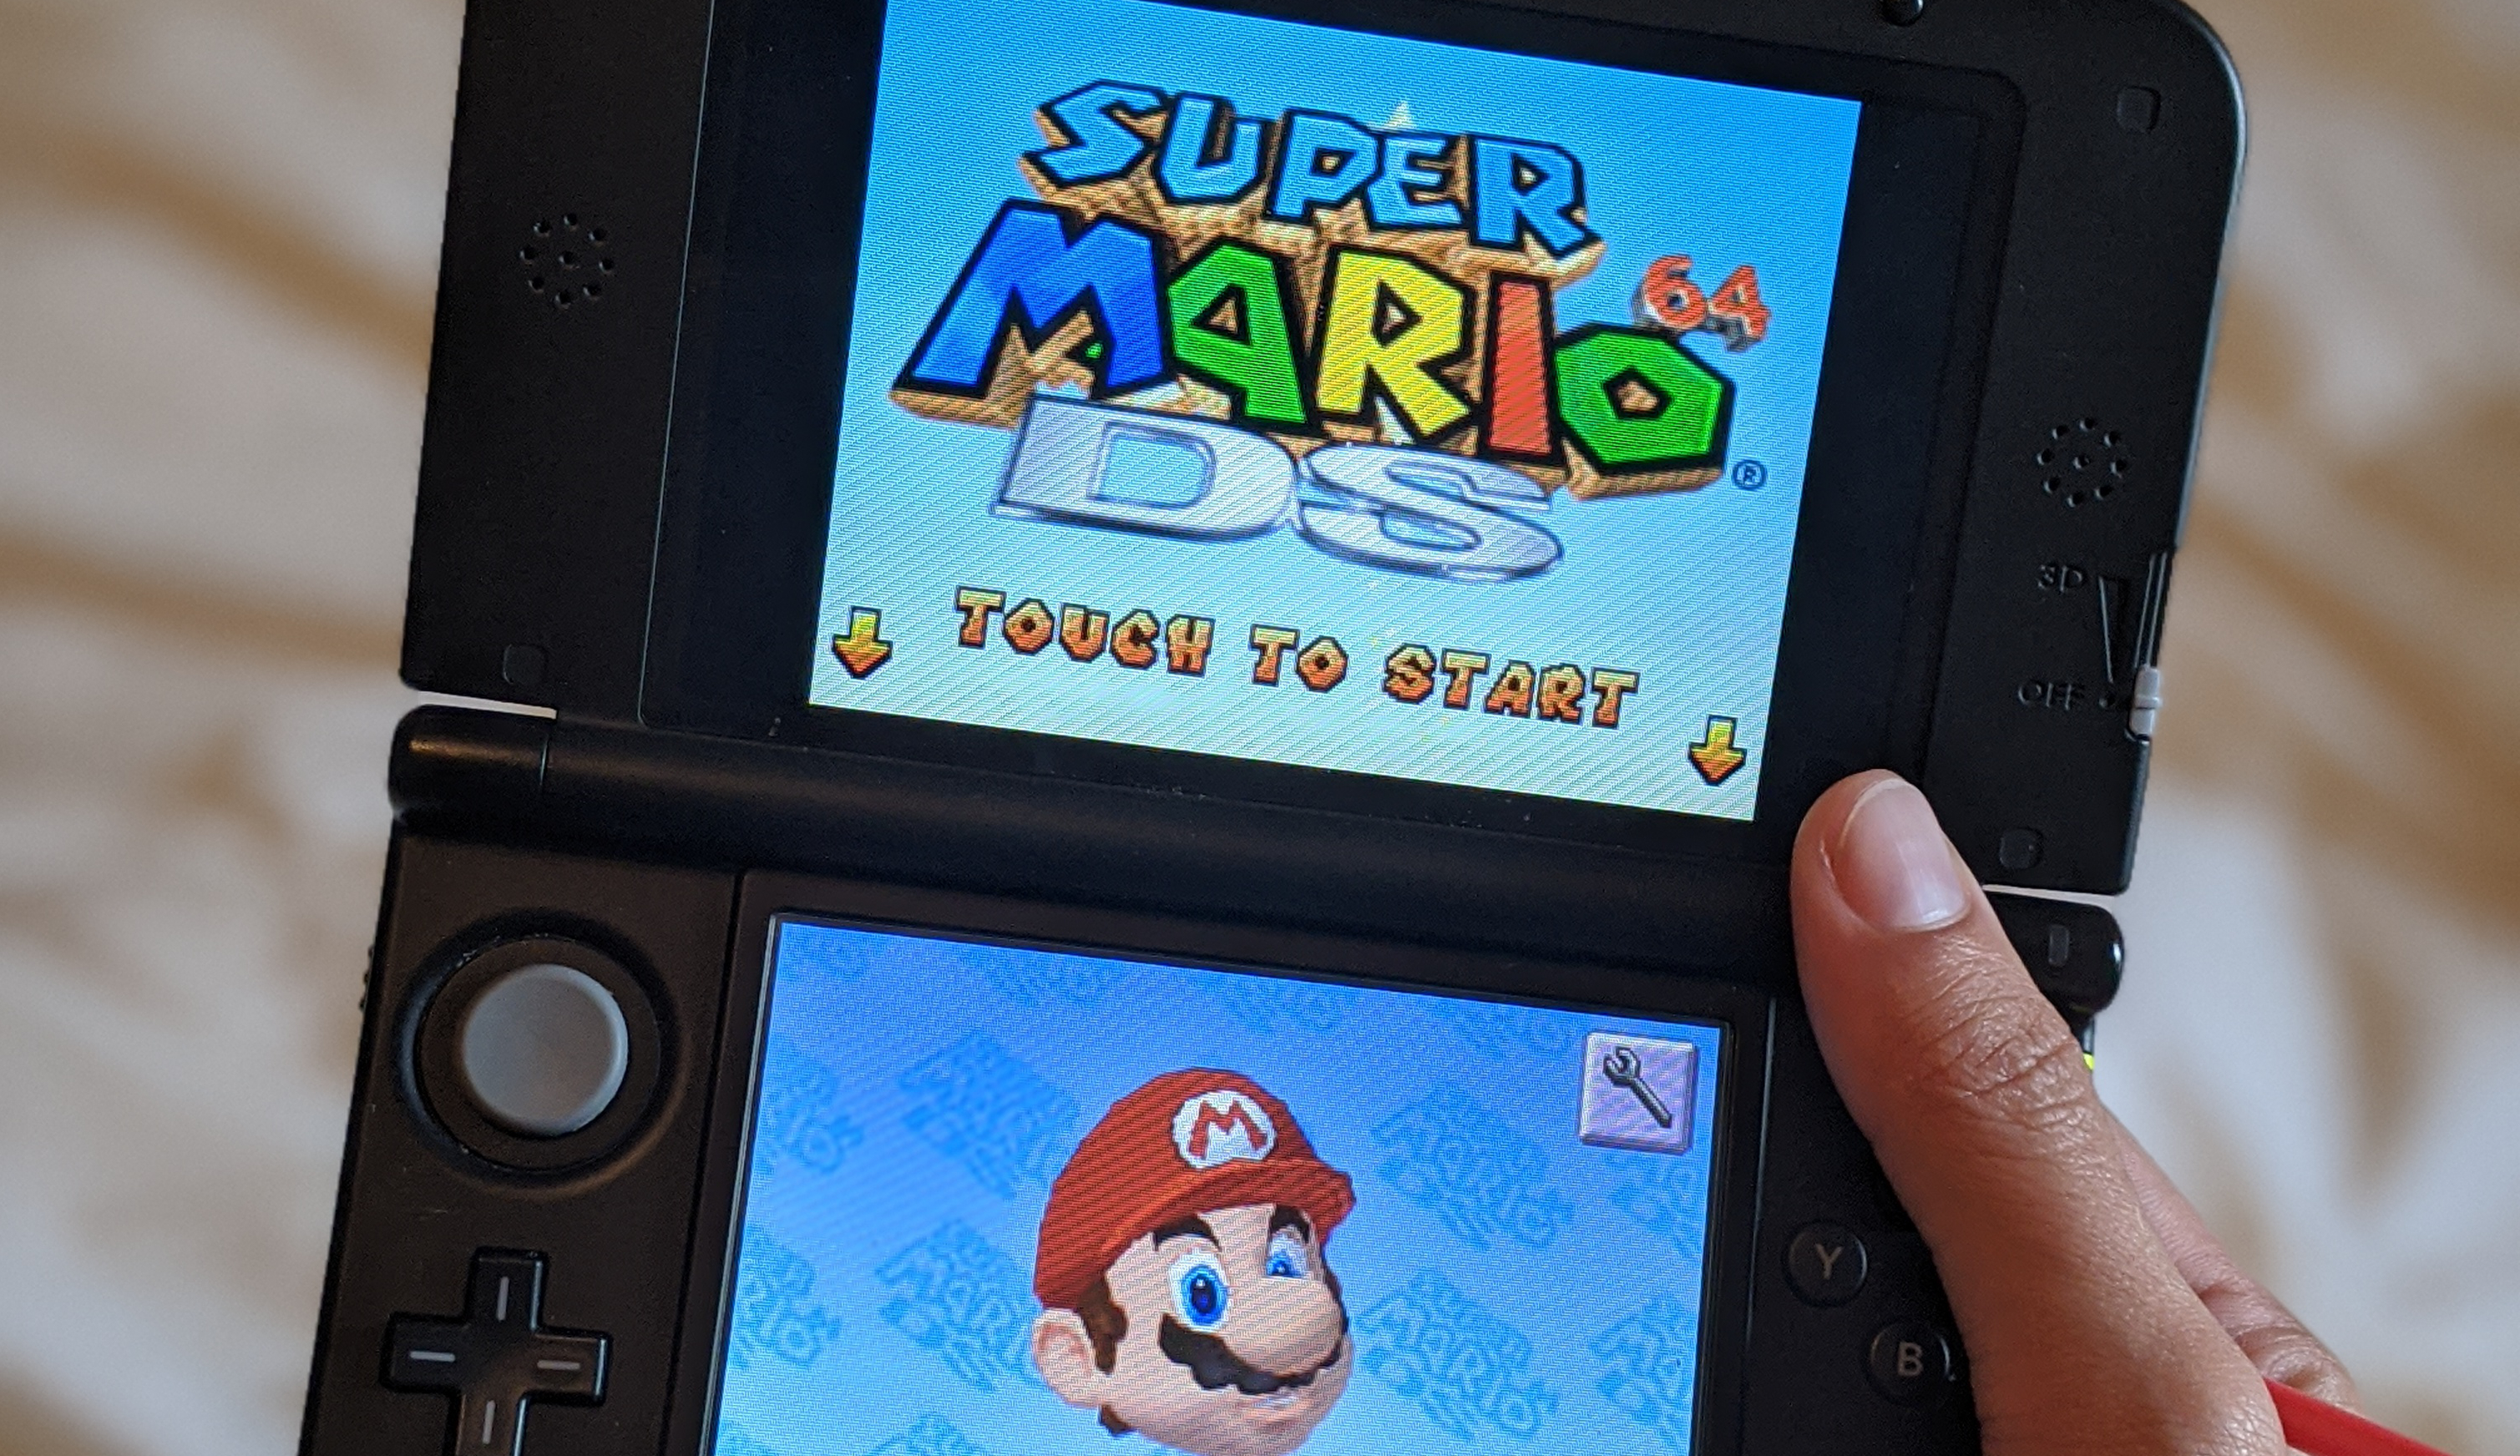 a person holding a Nintendo 3DS showing the Super Mario 64 DS start screen